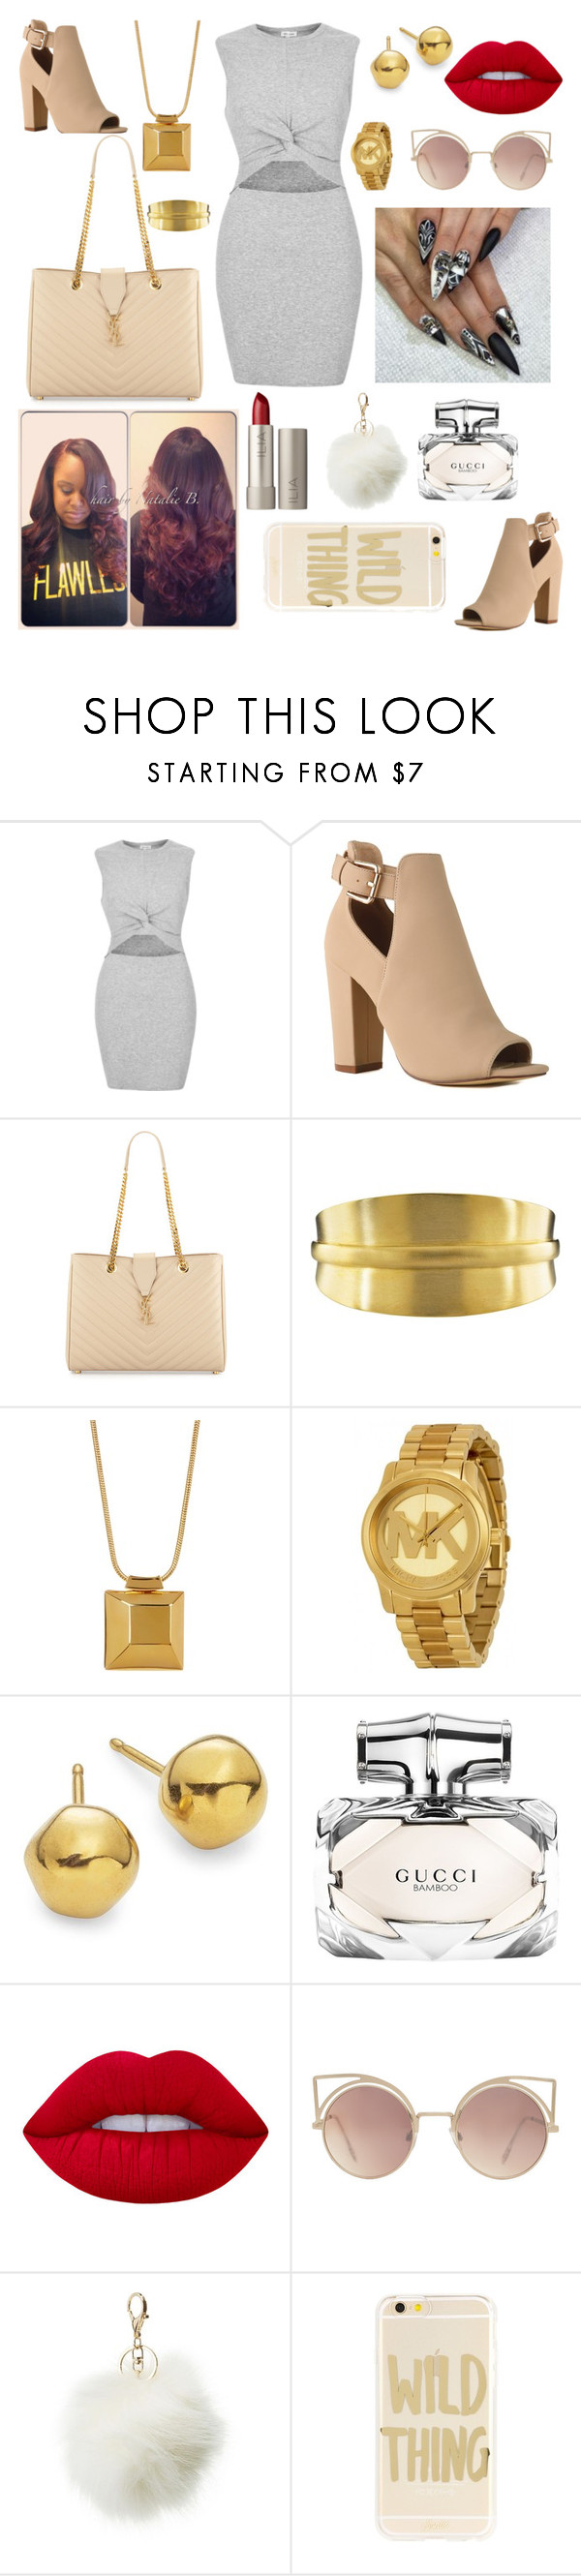 """Mall"" by designer-caldo ❤ liked on Polyvore featuring River Island, Yves Saint Laurent, Jane Diaz, Diane Von Furstenberg, Michael Kors, Uno de 50, Gucci, Lime Crime, MANGO and Charlotte Russe"